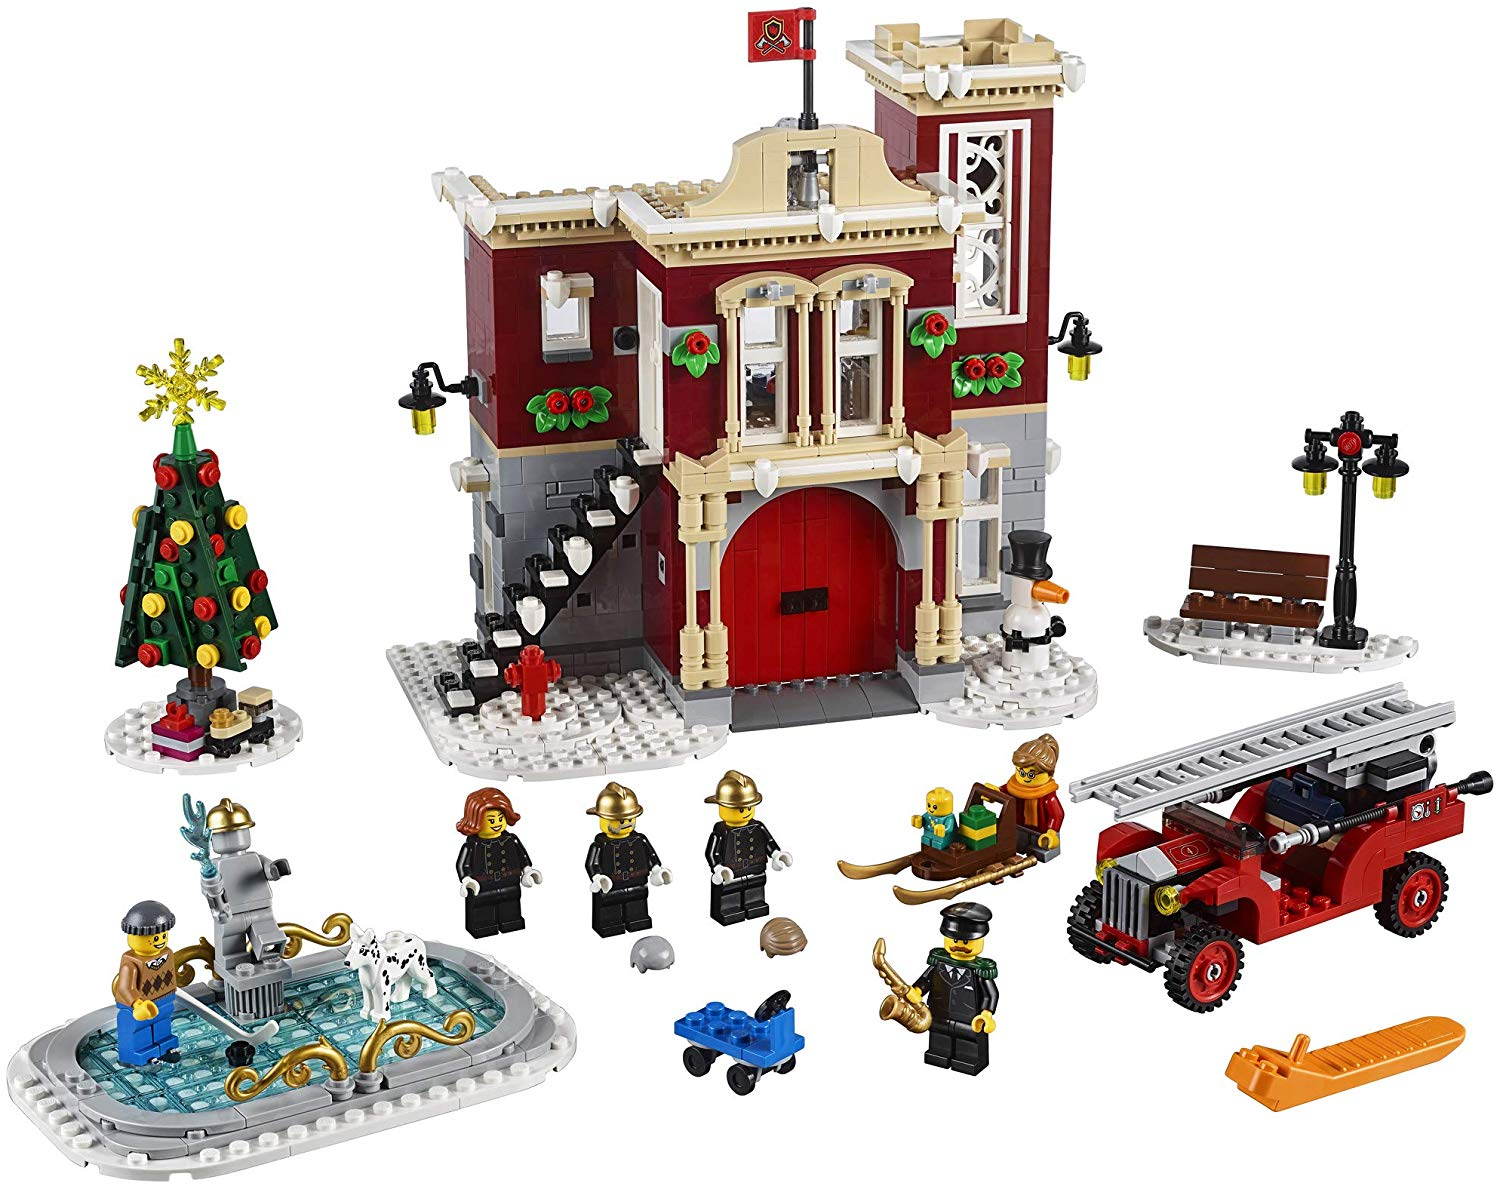 Christmas 2020 Lego Sets Best Christmas LEGO Sets 2020 Reviews   bricksfans.com